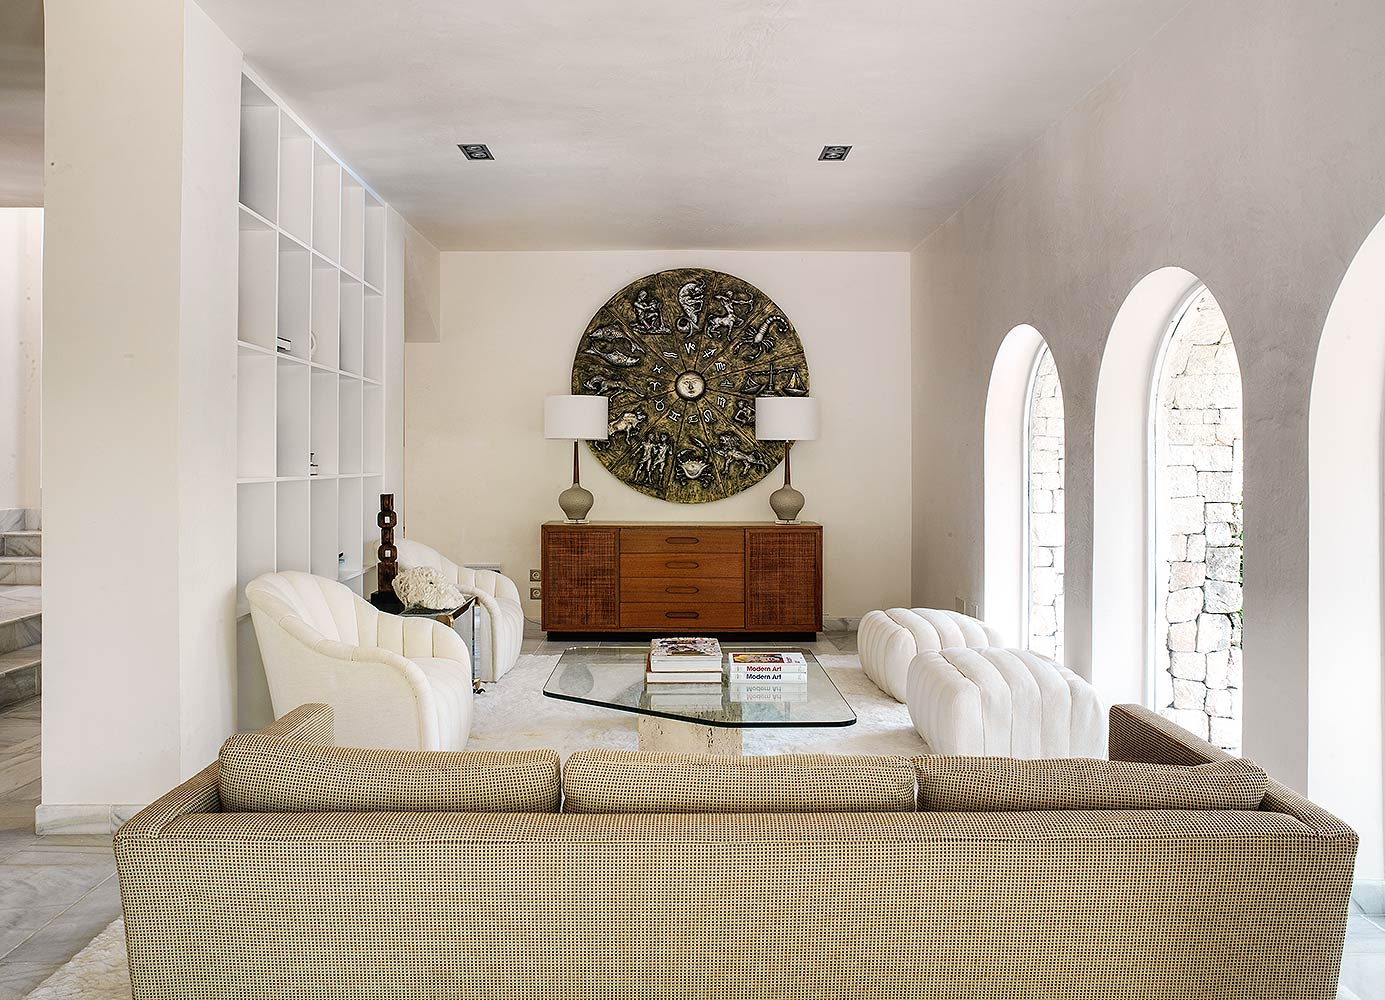 Interior images for living room